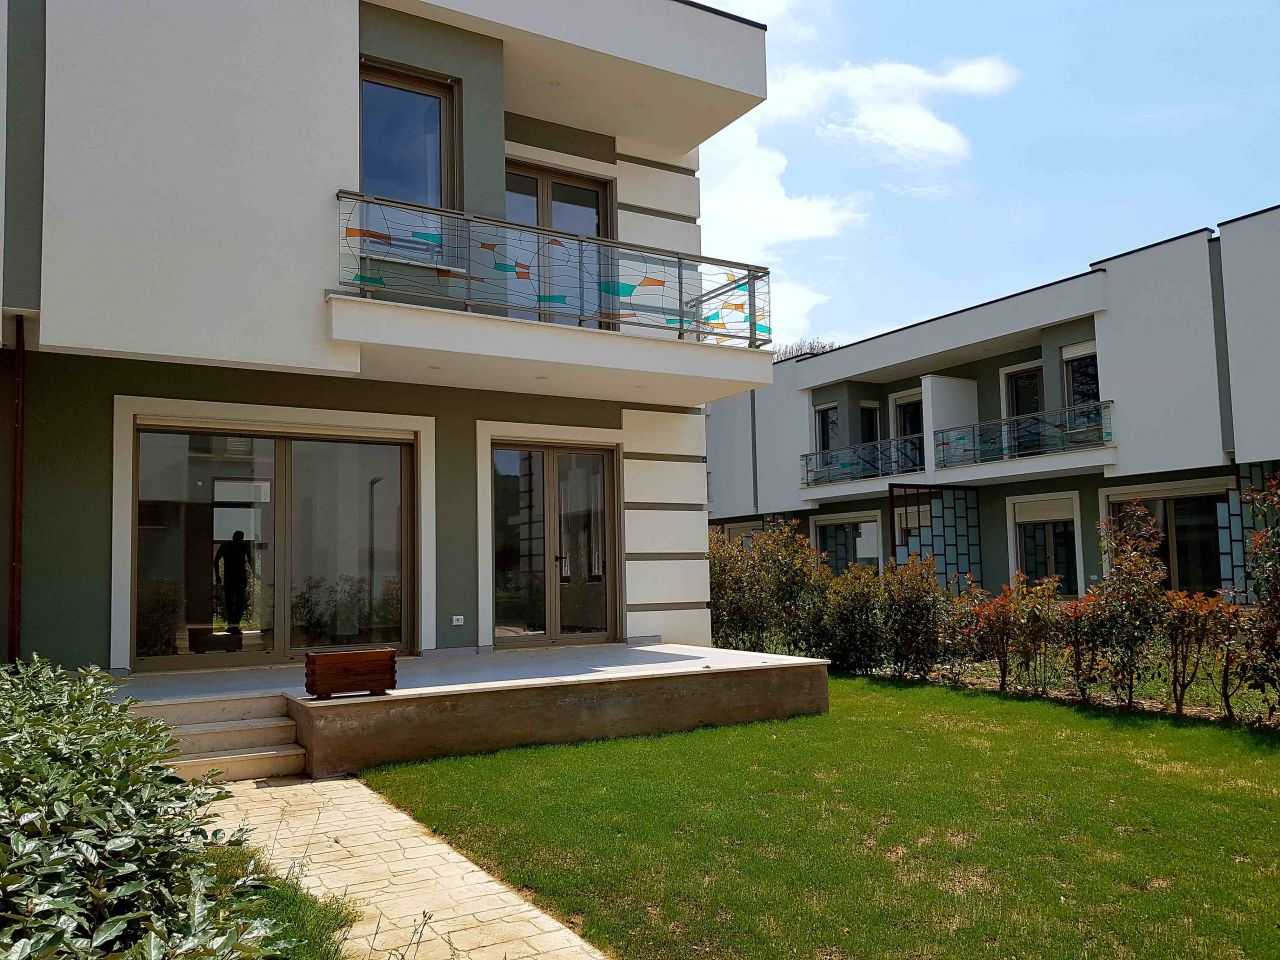 Villa in Perla Resort. Buy Villas in Gjiri Lalzit